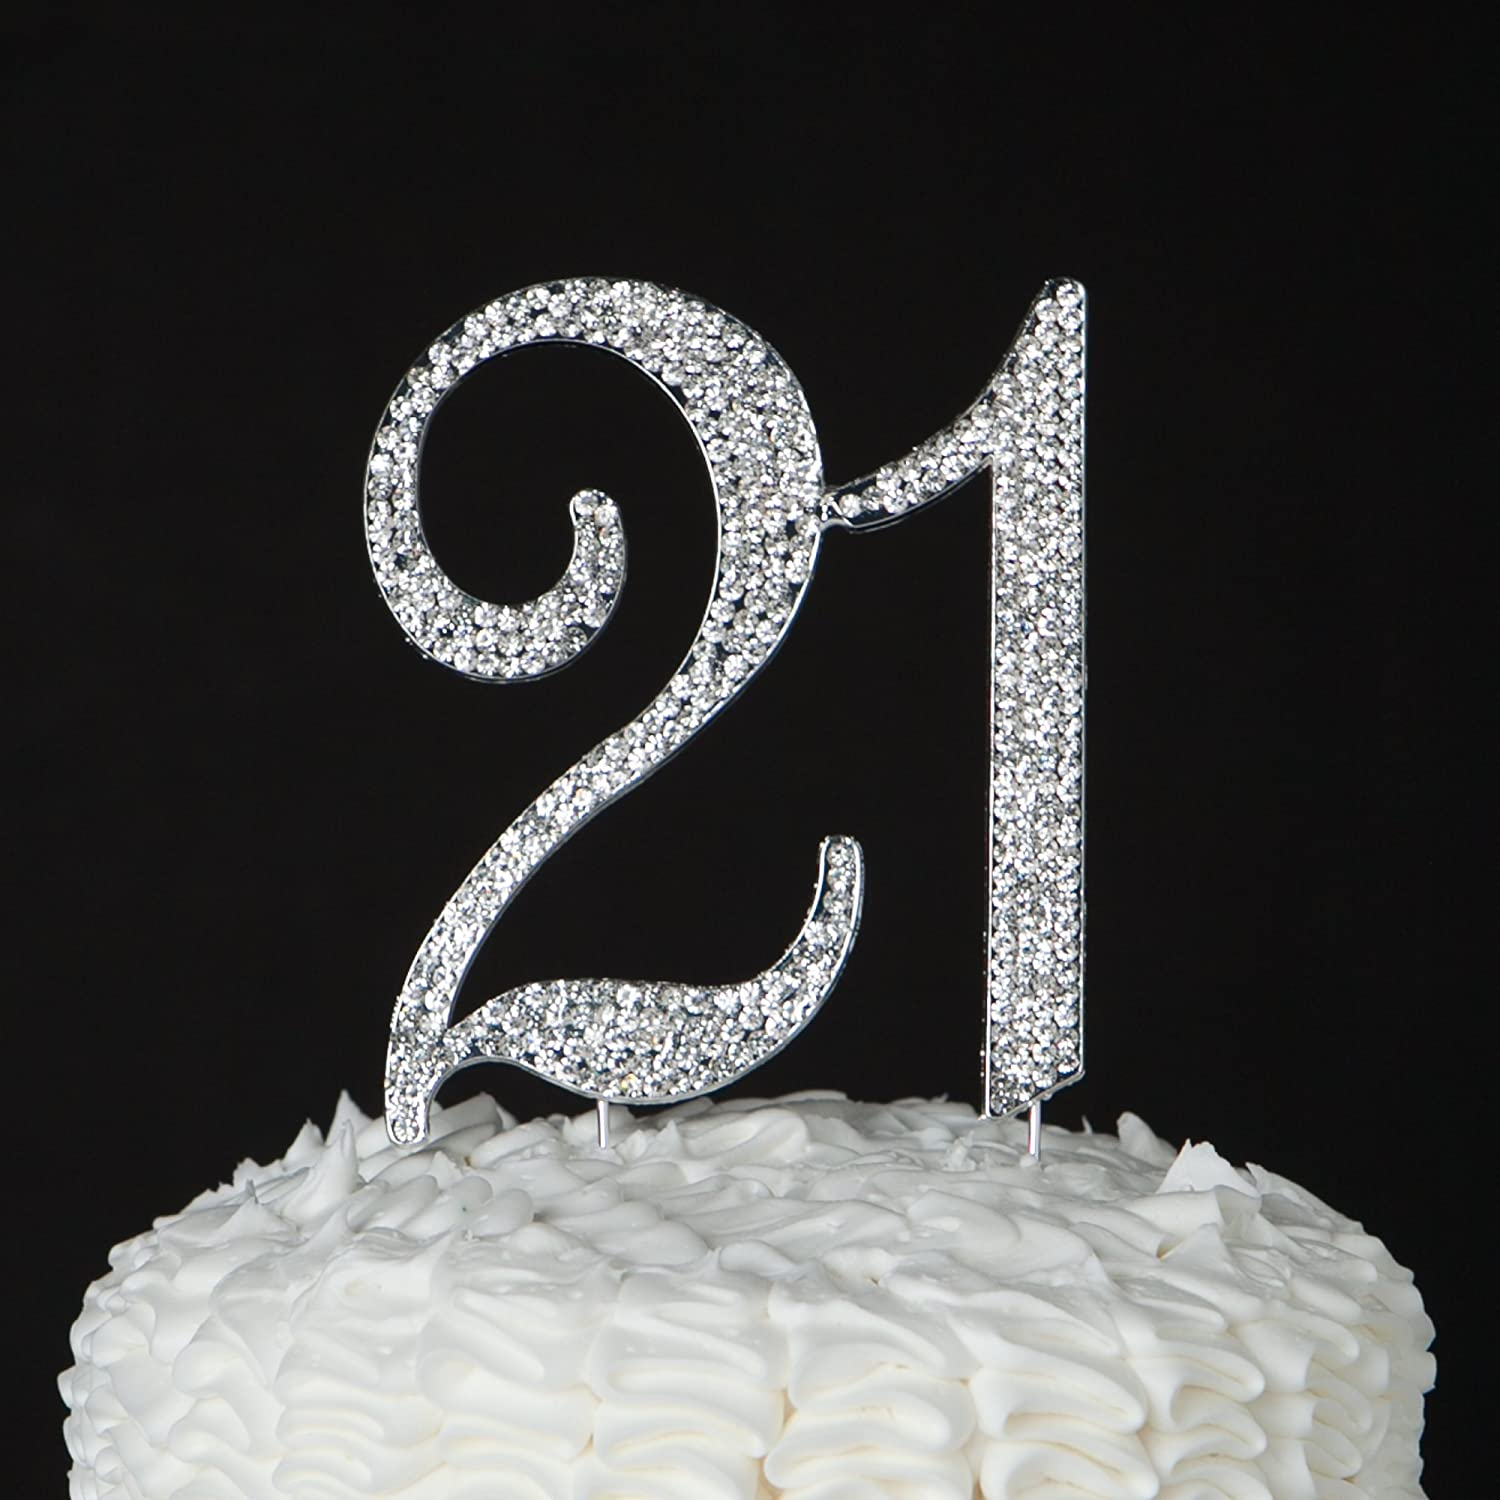 Amazon 21 Cake Topper For 21st Birthday Party Supplies